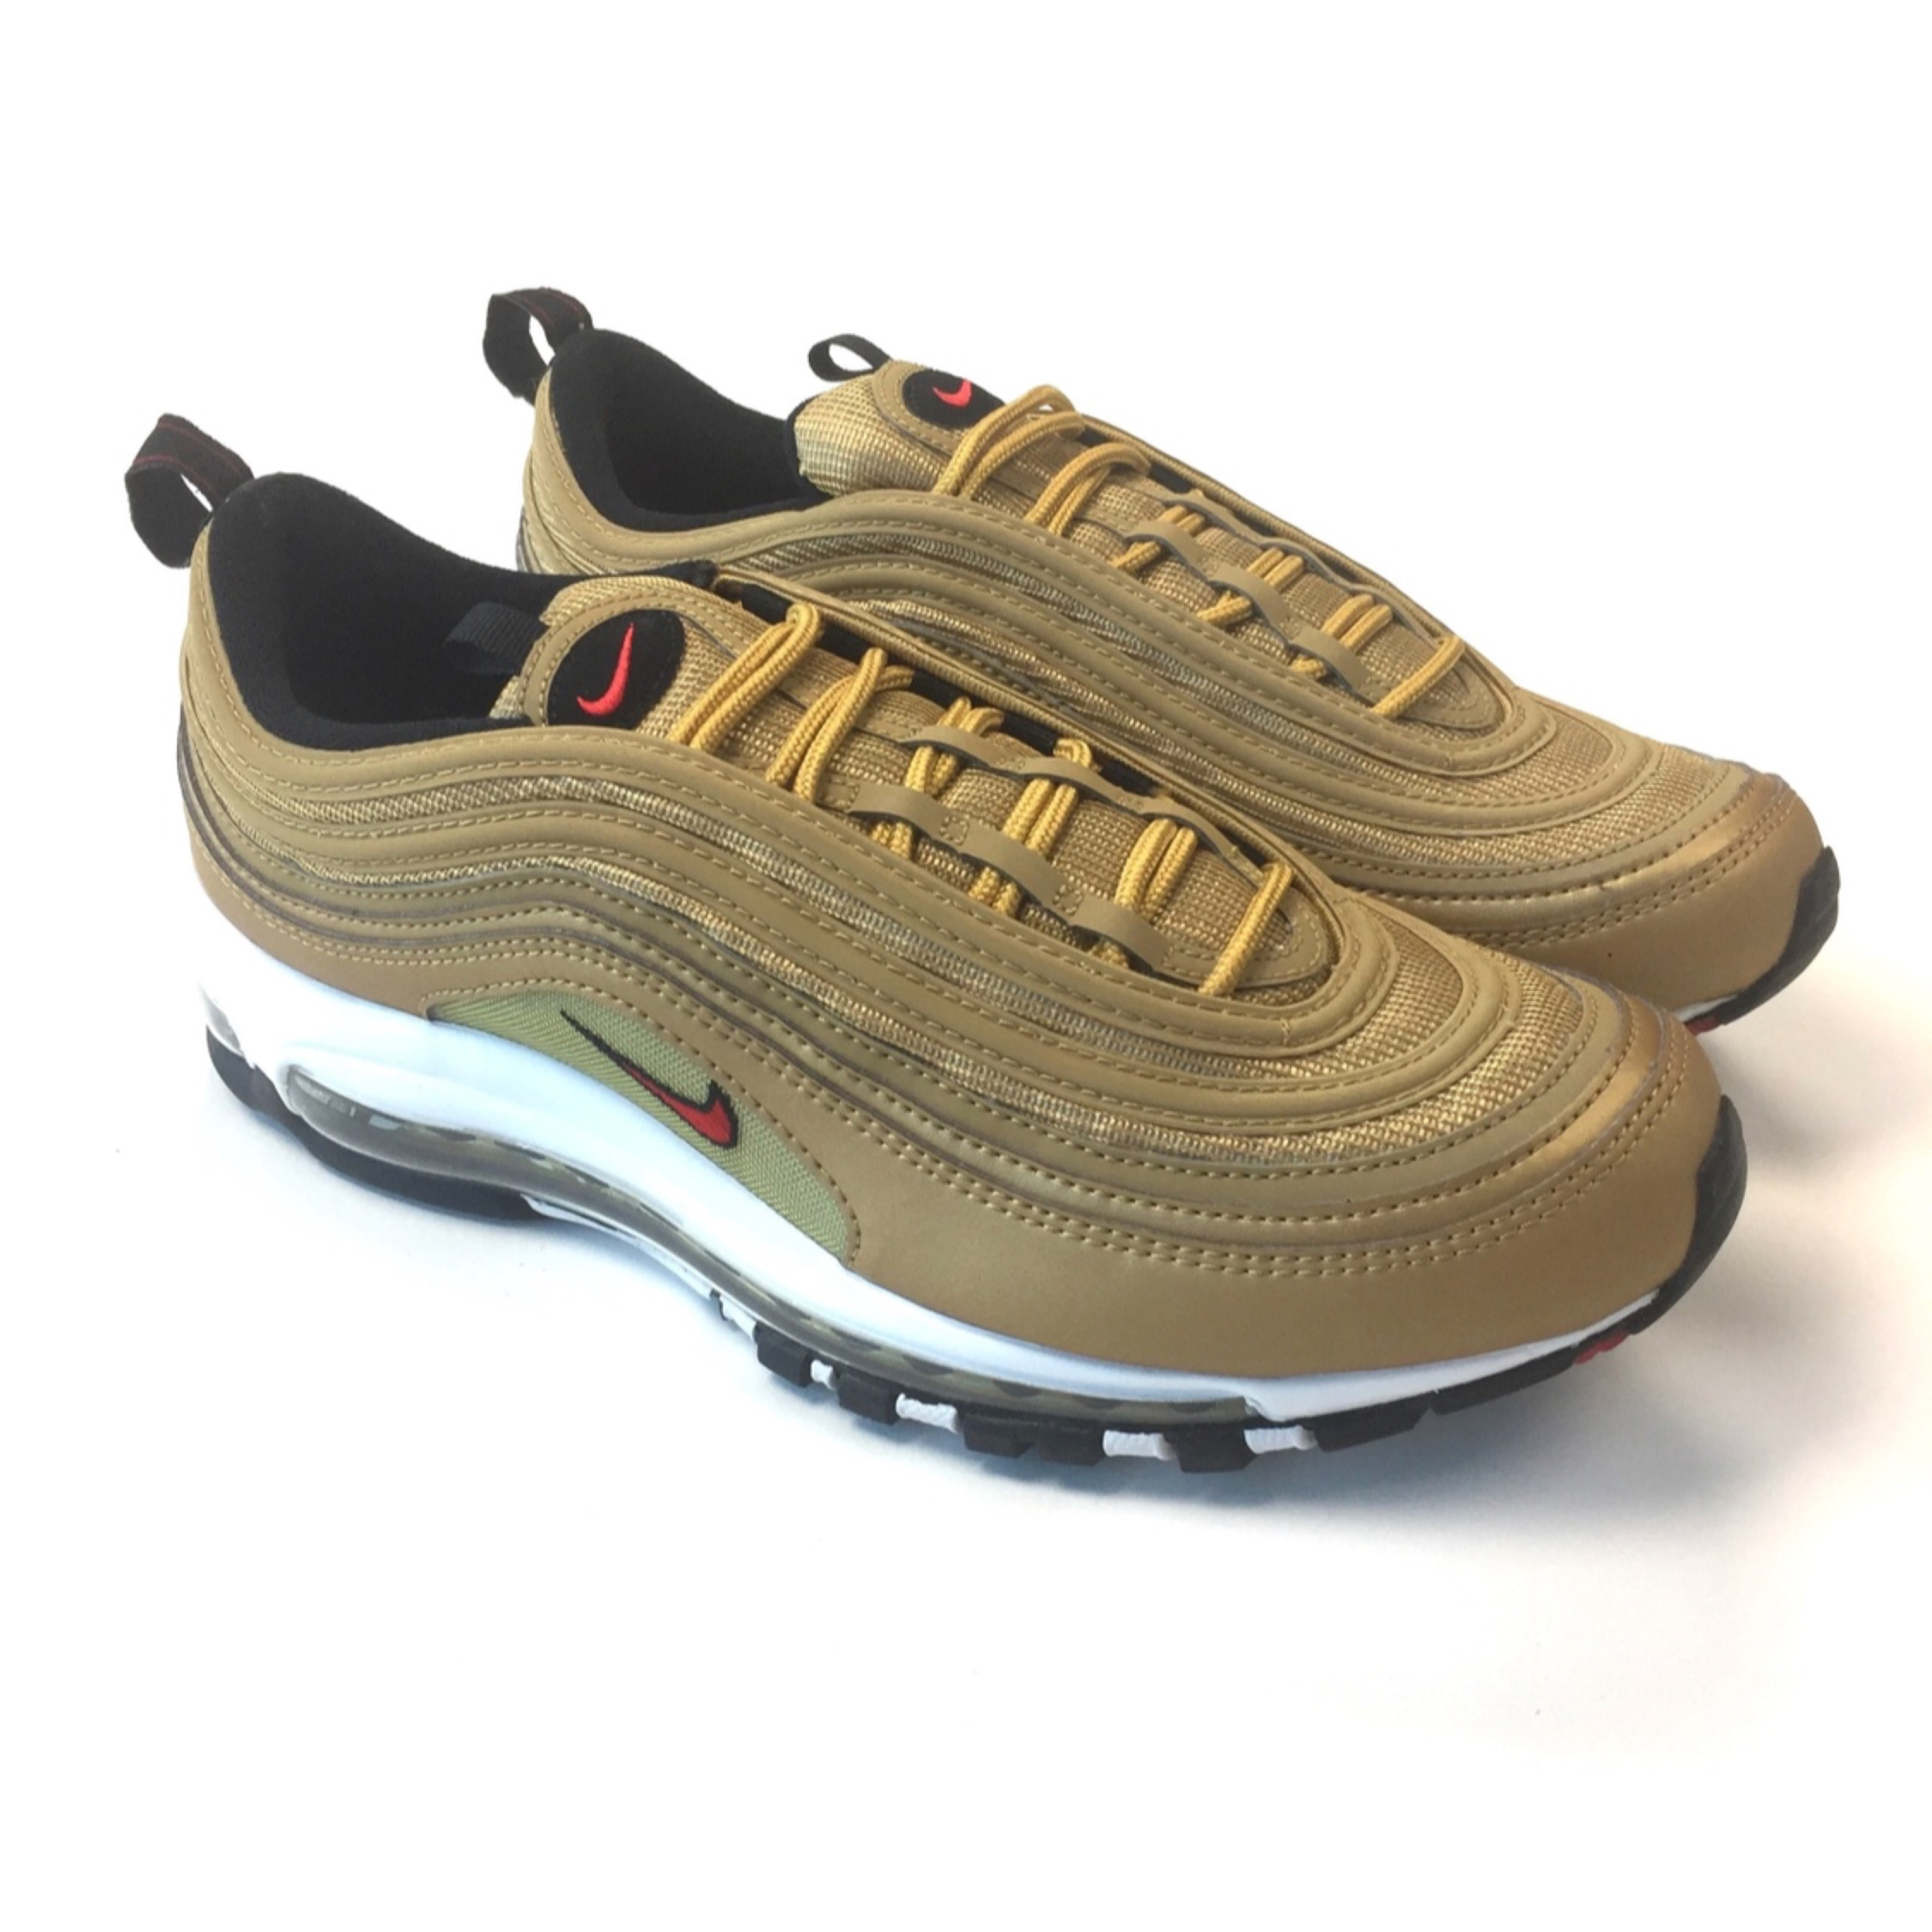 low priced 94adc 8c6a4 Nike Air Max 97 Gold Qs Size 10